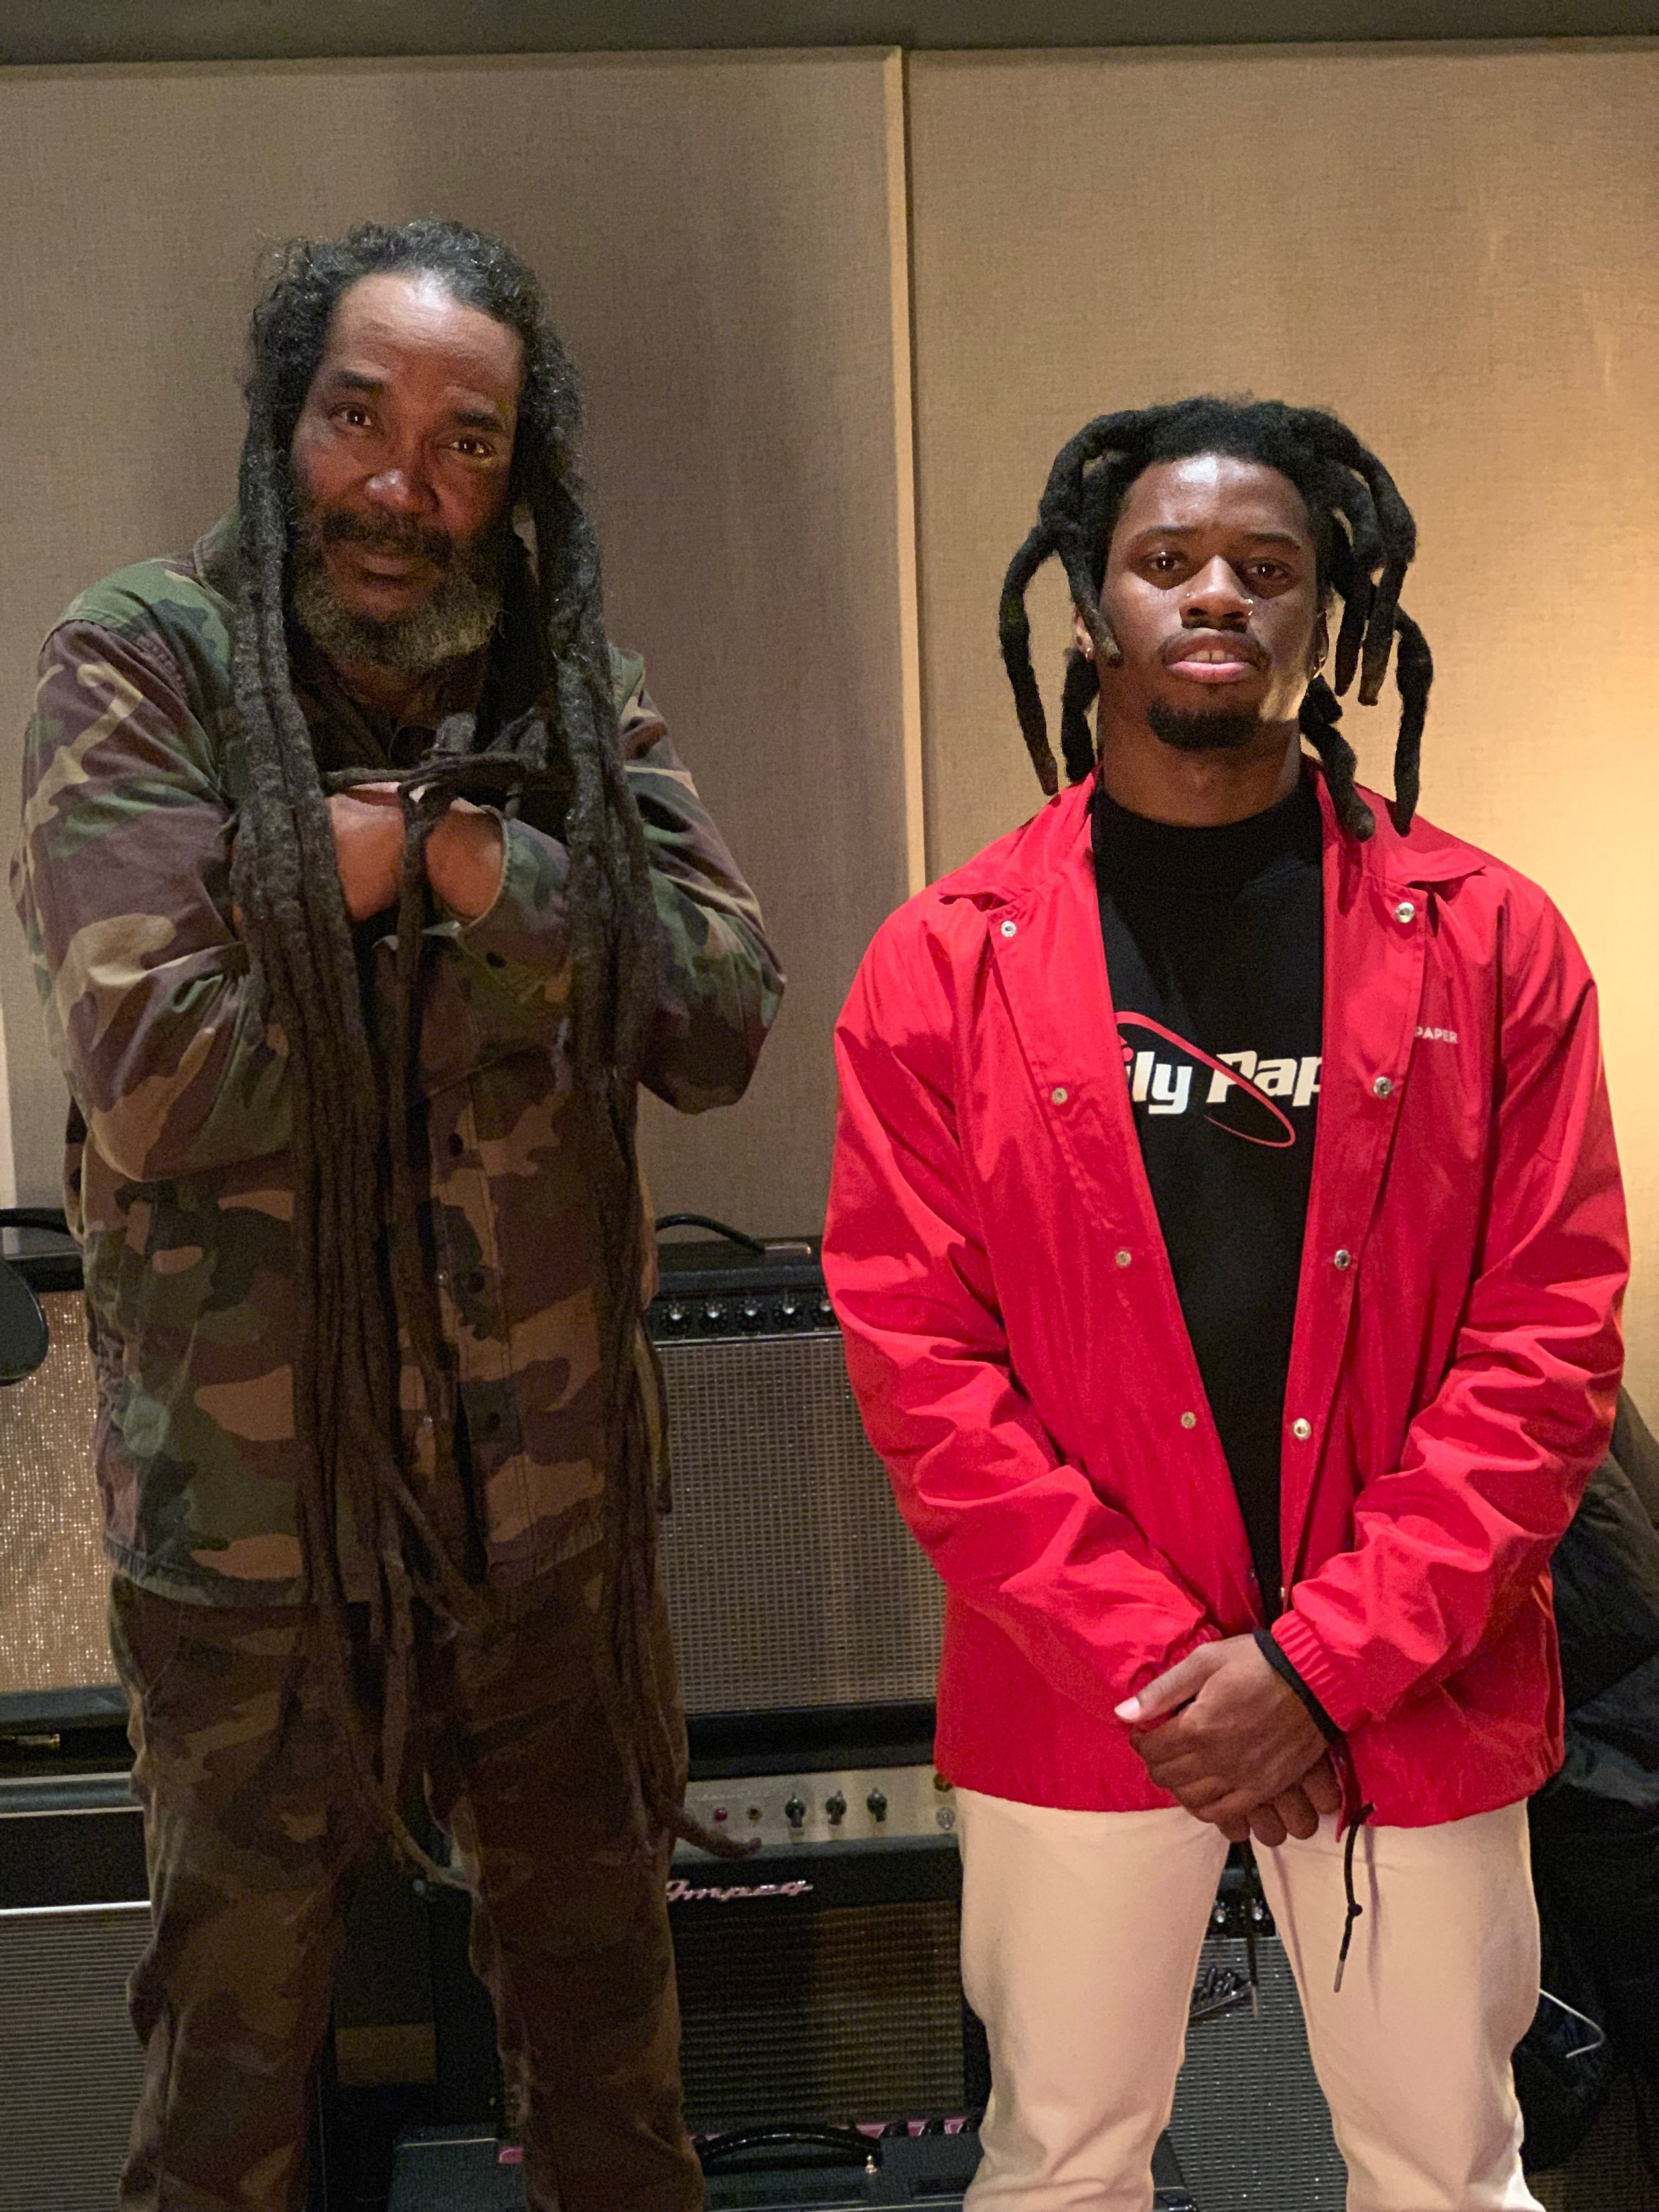 Bad Brains Denzel Curry